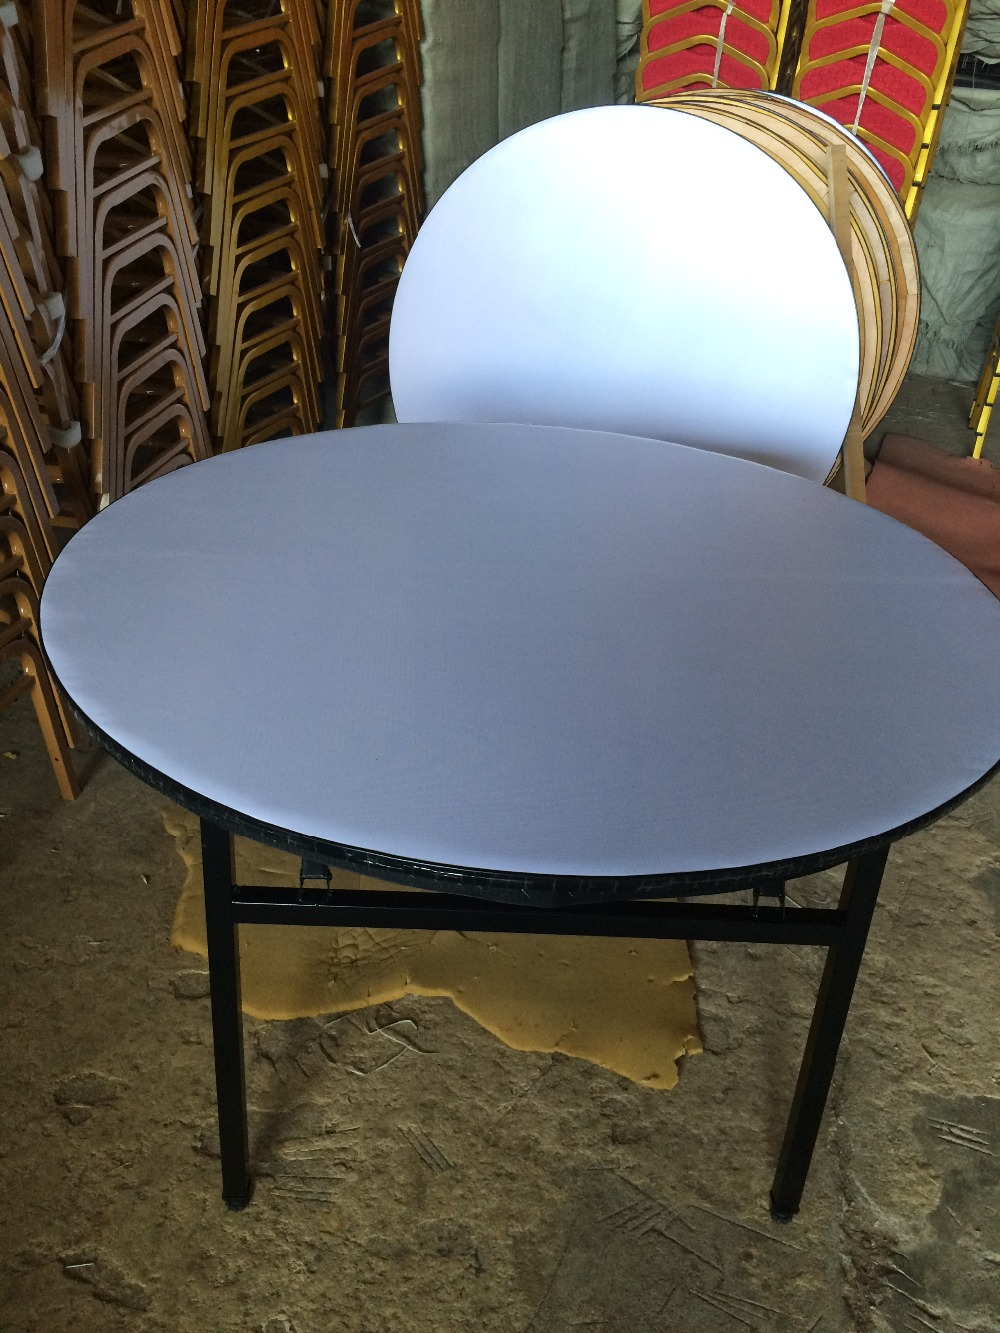 ZT-1267T steel frame round pvc folding hotel table